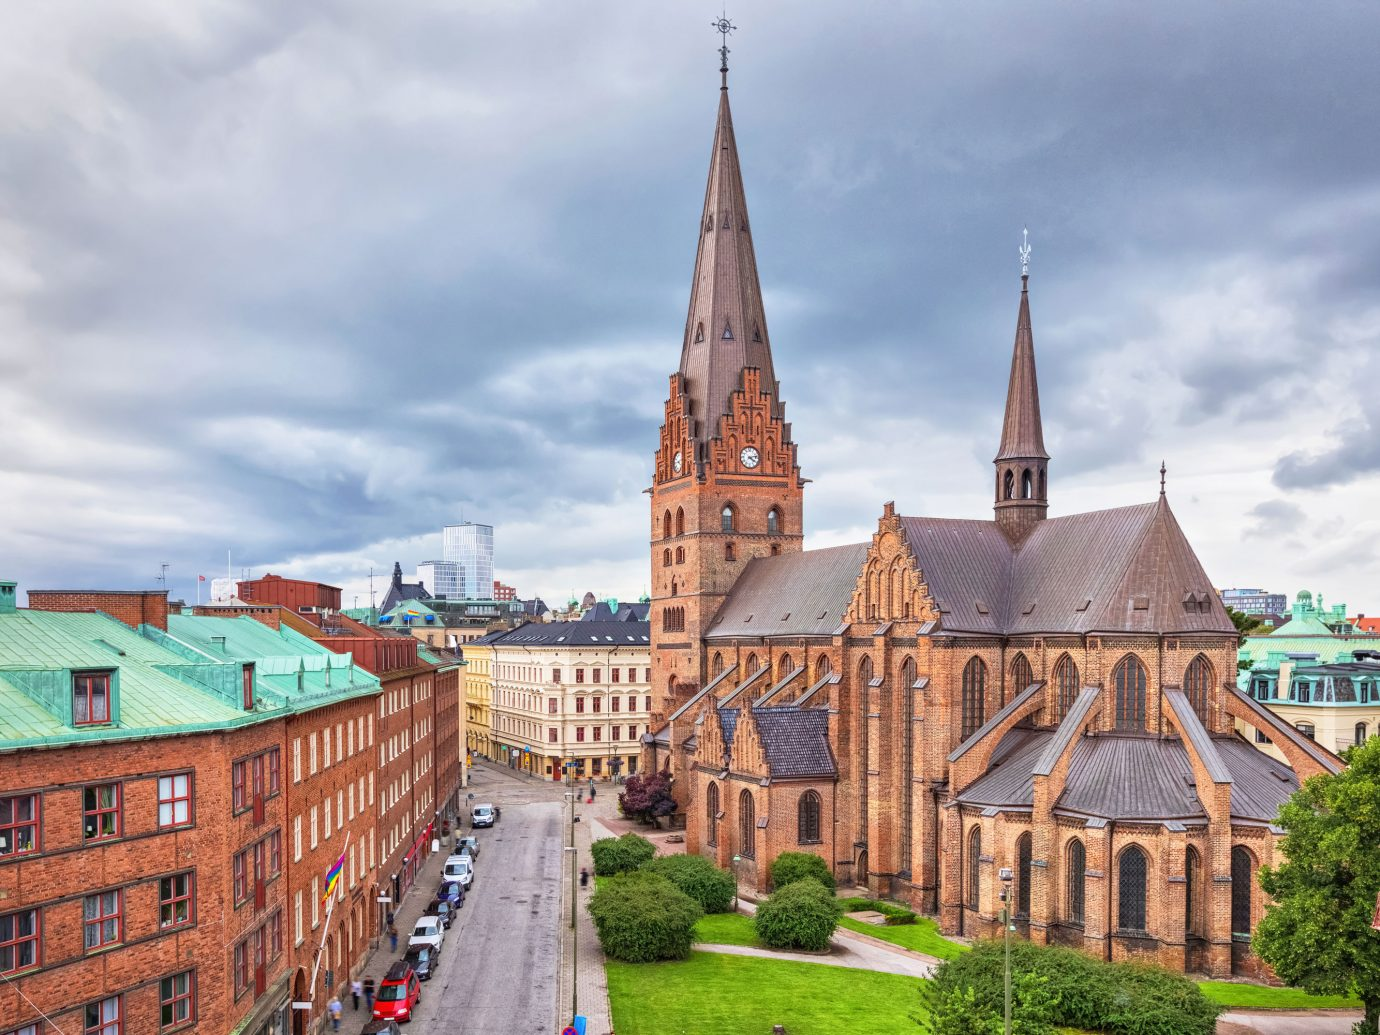 Street and church in Malmo, Sweden